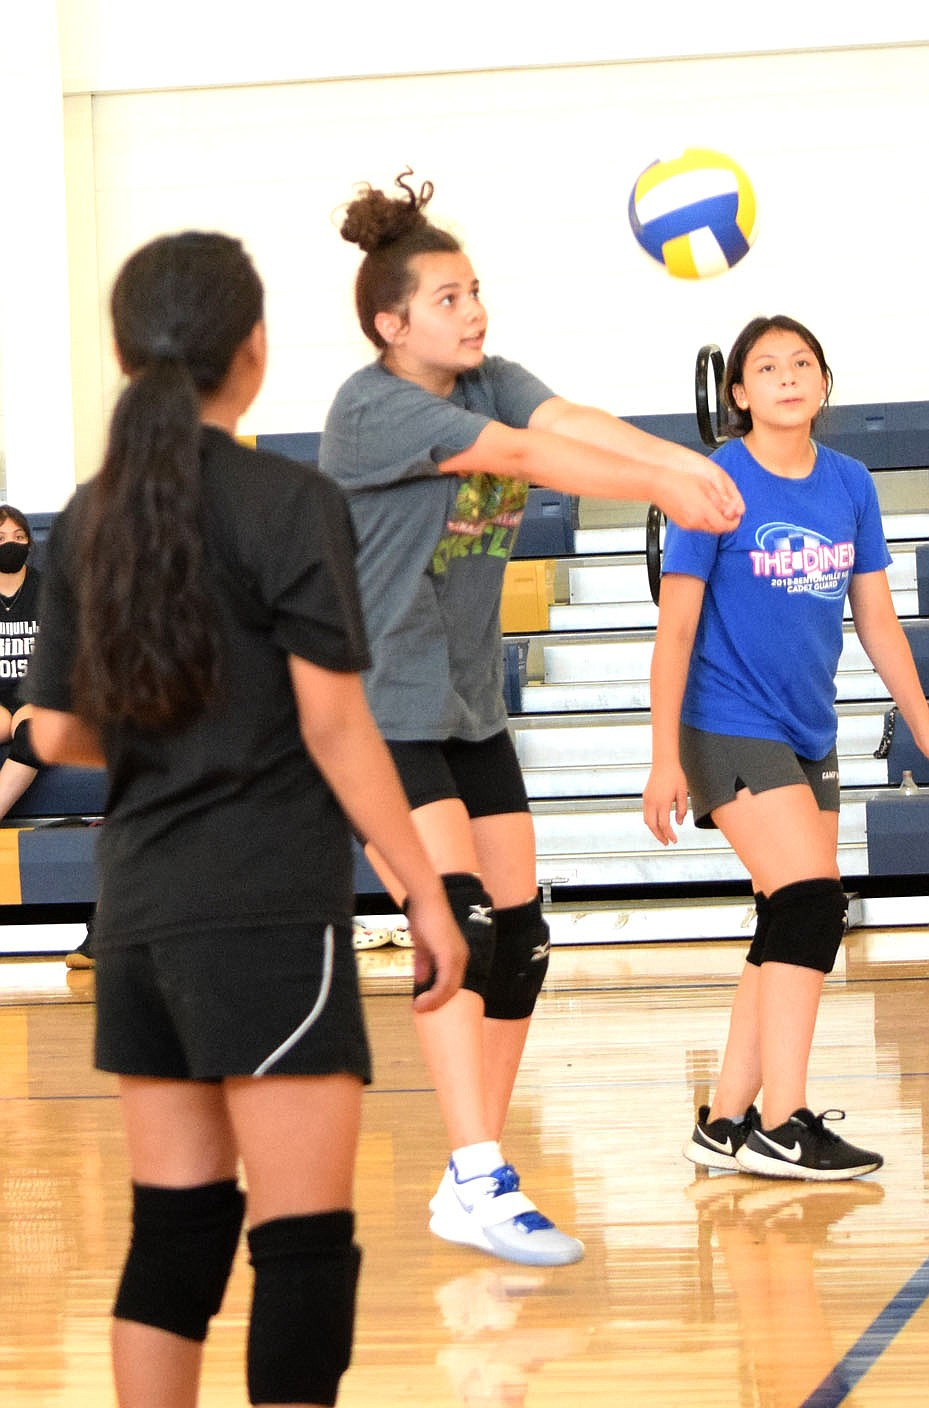 Westside Eagle Observer/MIKE ECKELS Ariana Kumbera (center) uses a forearm hit to move the ball back over the net during the Lady Bulldog junior high volleyball practice session in the gym at Decatur Middle School June 9. Head coach Cali Lankford set up the summer practice sessions to better prepare her players for the upcoming volleyball season.